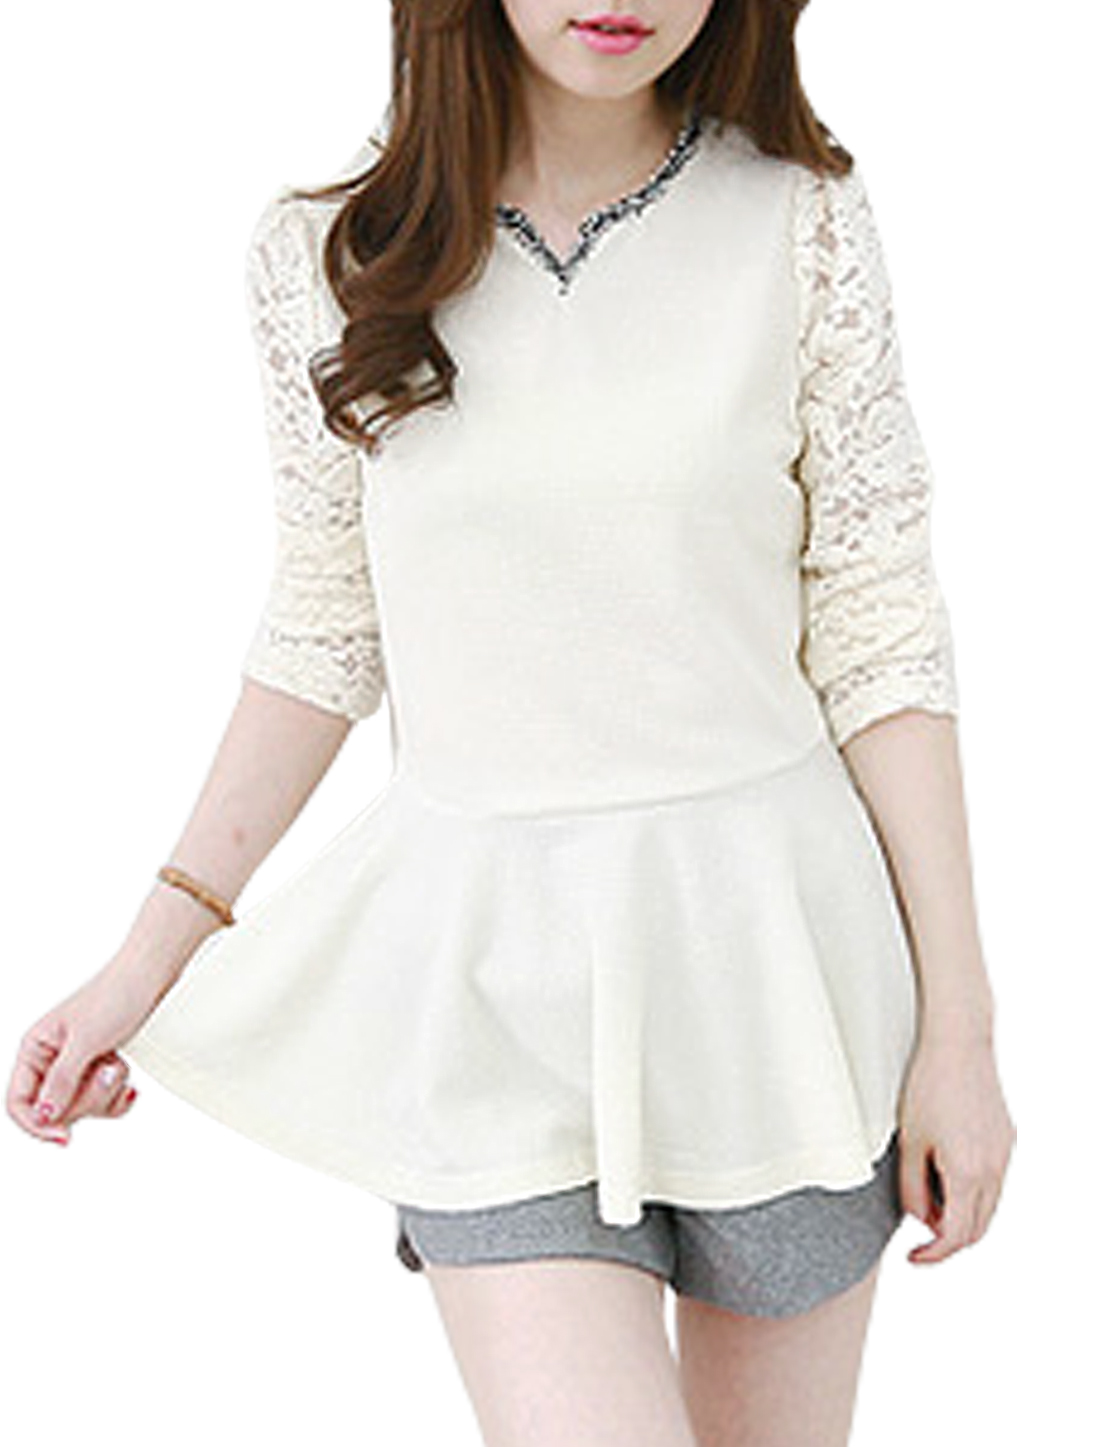 Woman Floral Design Lace Panel Long Sleeves Tunic Peplum Top White S